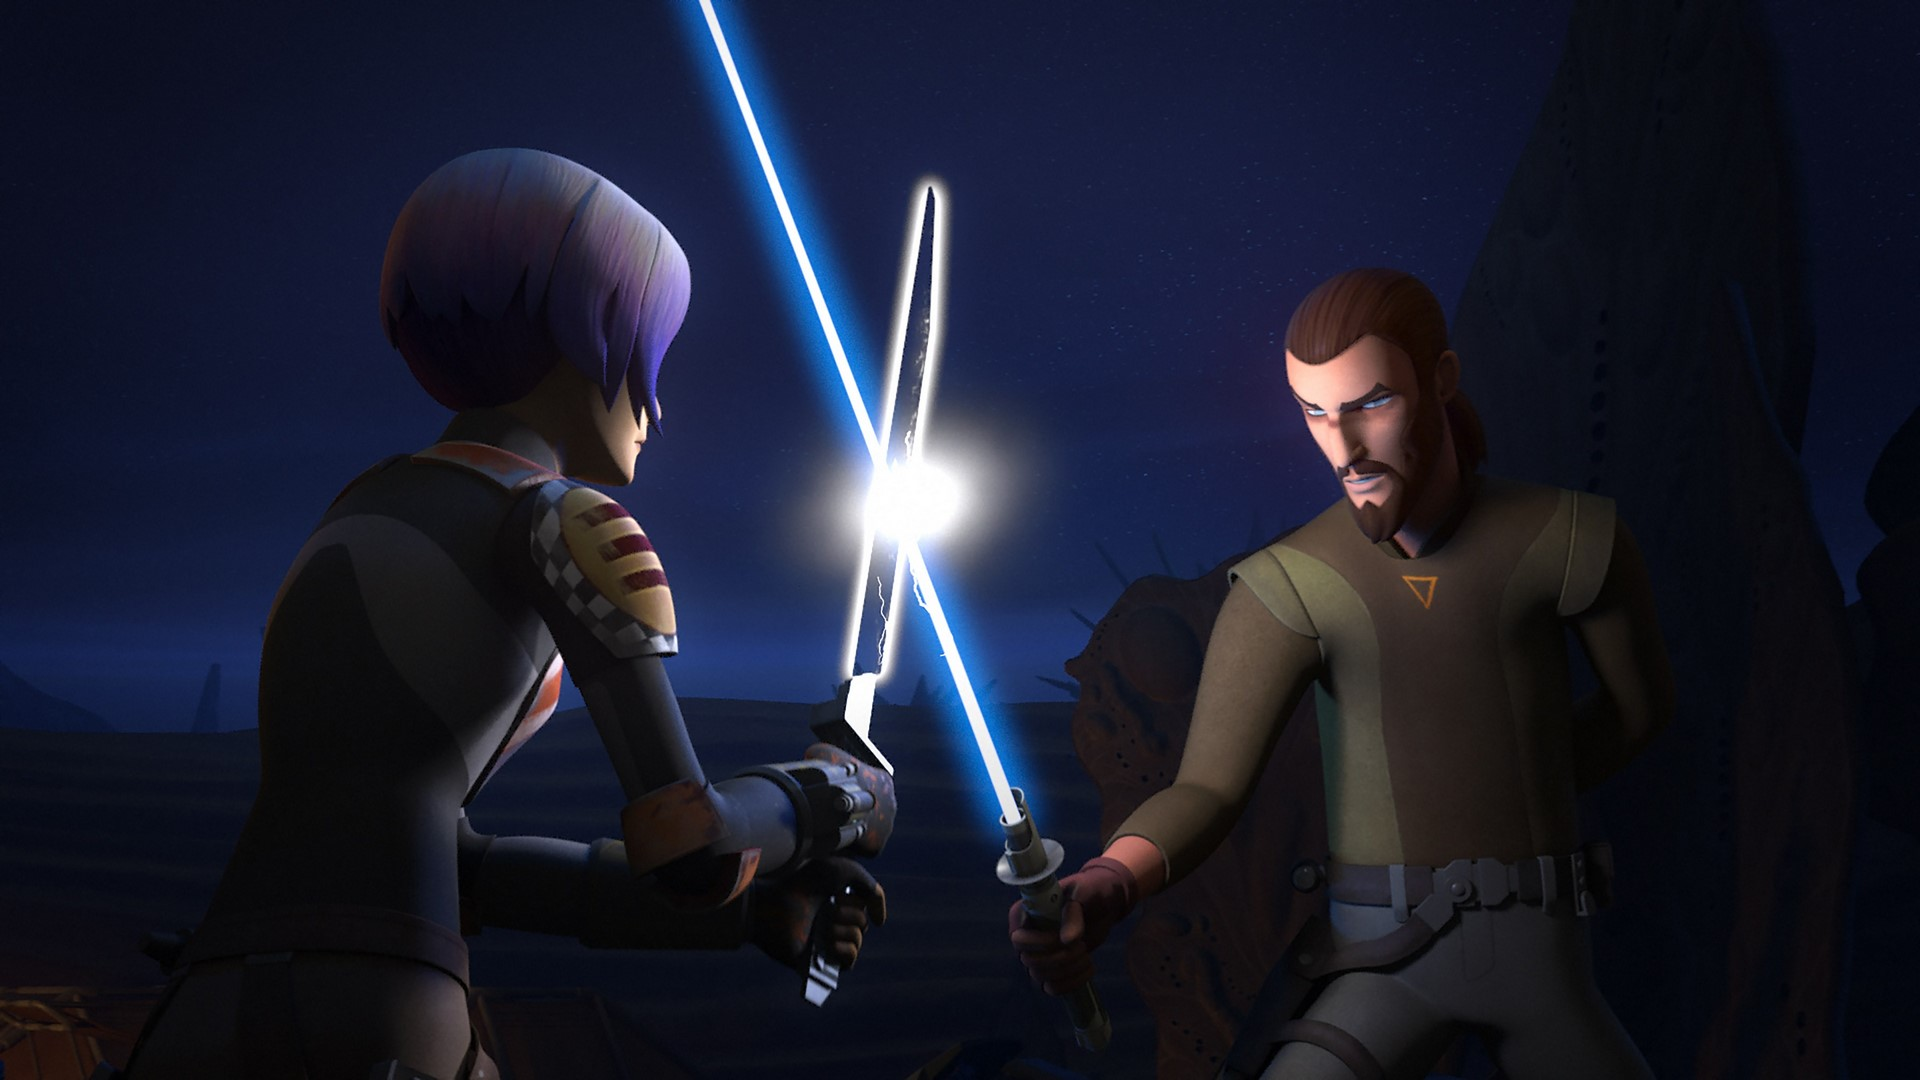 Sabine vs Kanan in Star Wars Rebels